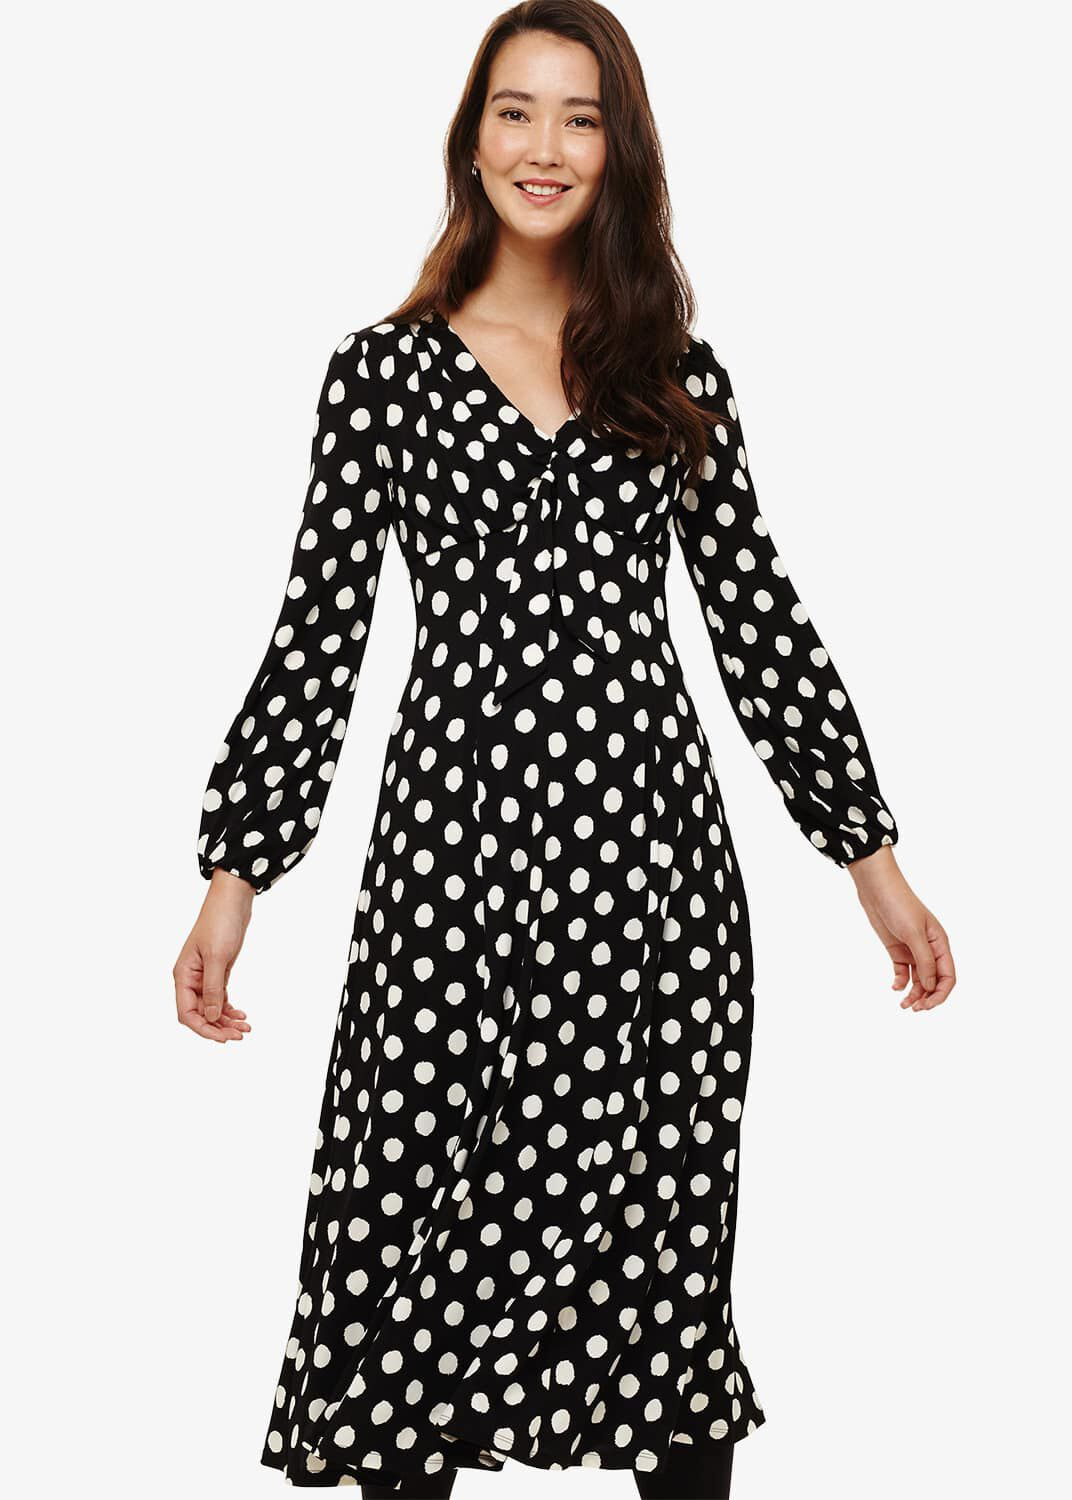 Phase Eight Siana Spot Midi Dress, Black, Fit & Flare